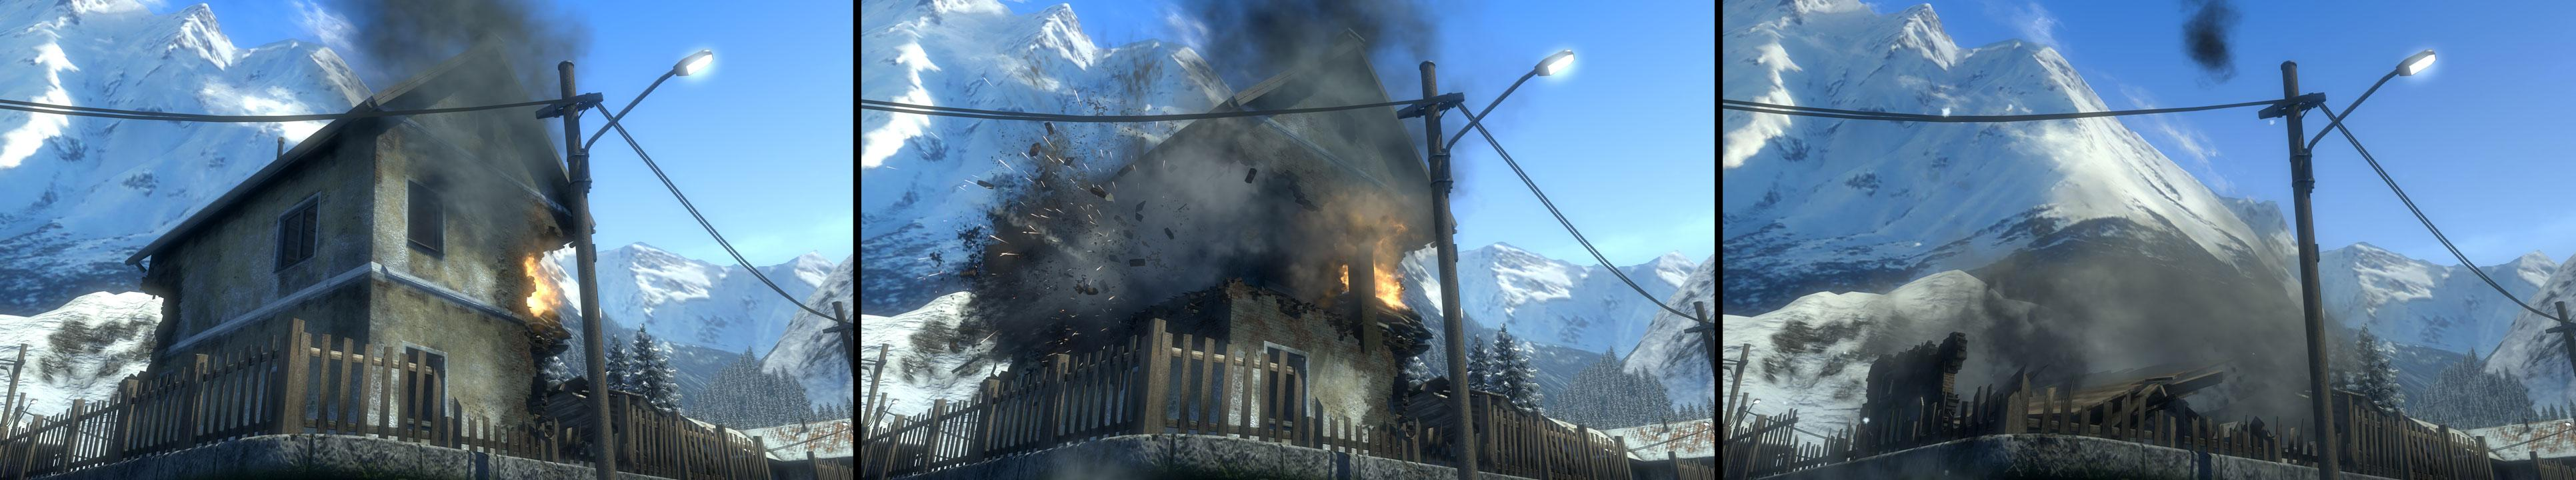 Fitxer:BFBC2 House collapsing destruction.jpg